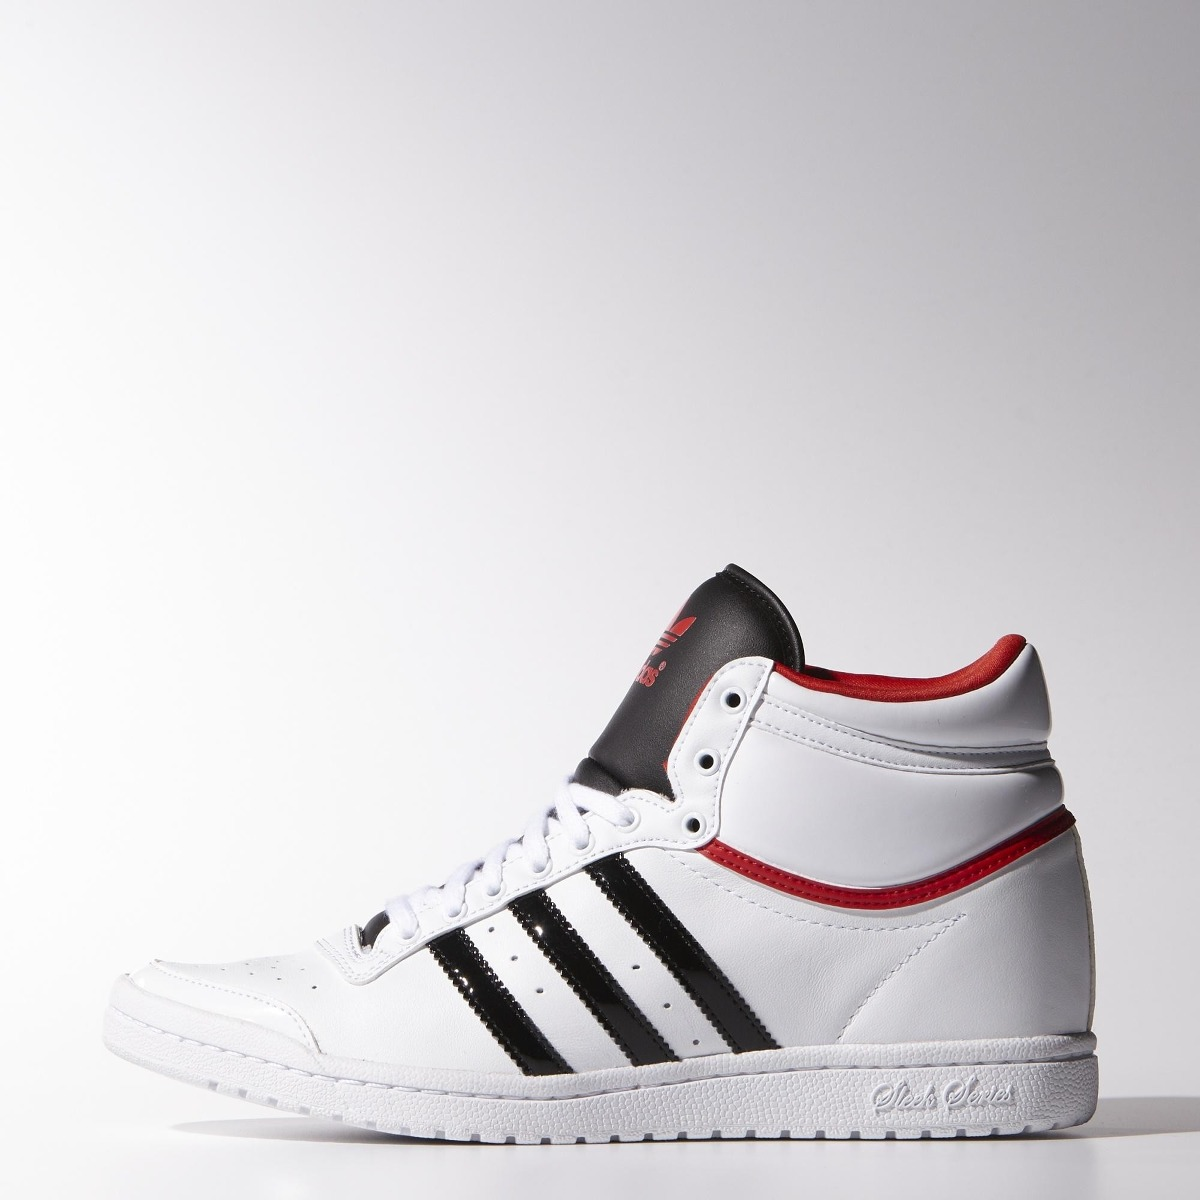 Botitas adidas Top Ten Hi Sleek Up Mujer